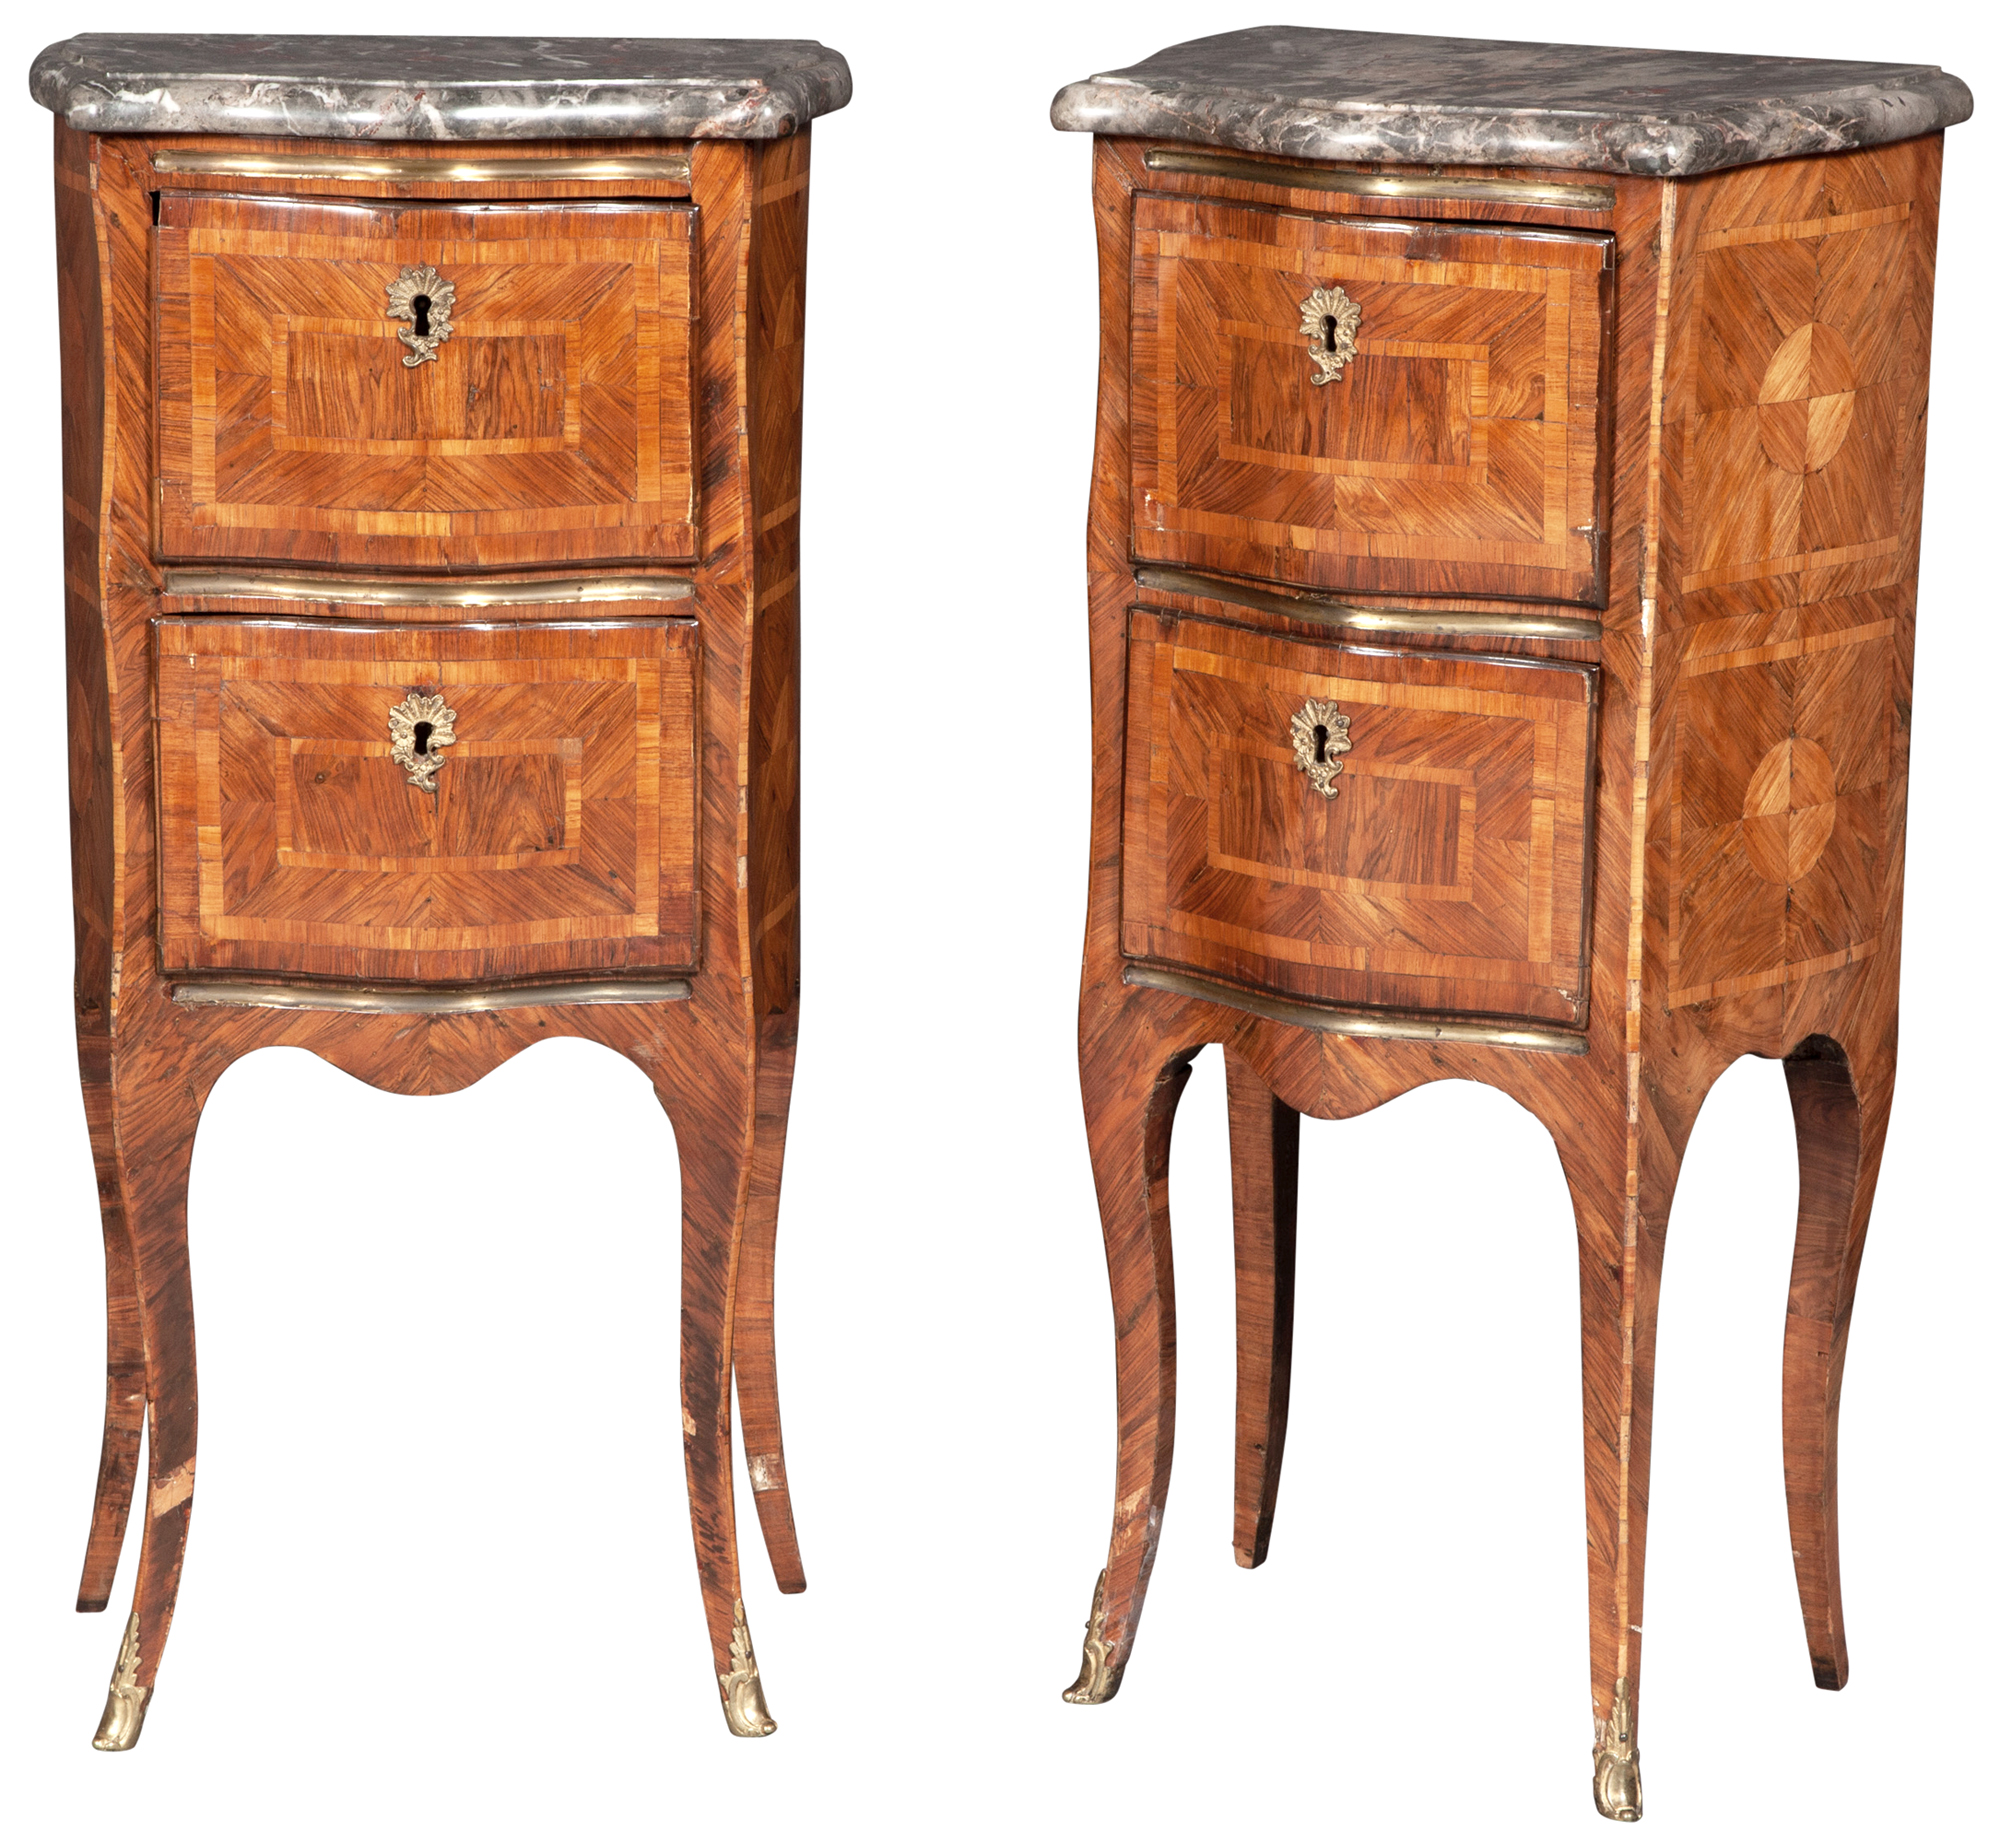 Lot image - Pair of Louis XV Style Kingwood Parquetry, Marble and Brass-Mounted Tables en Chiffoniere